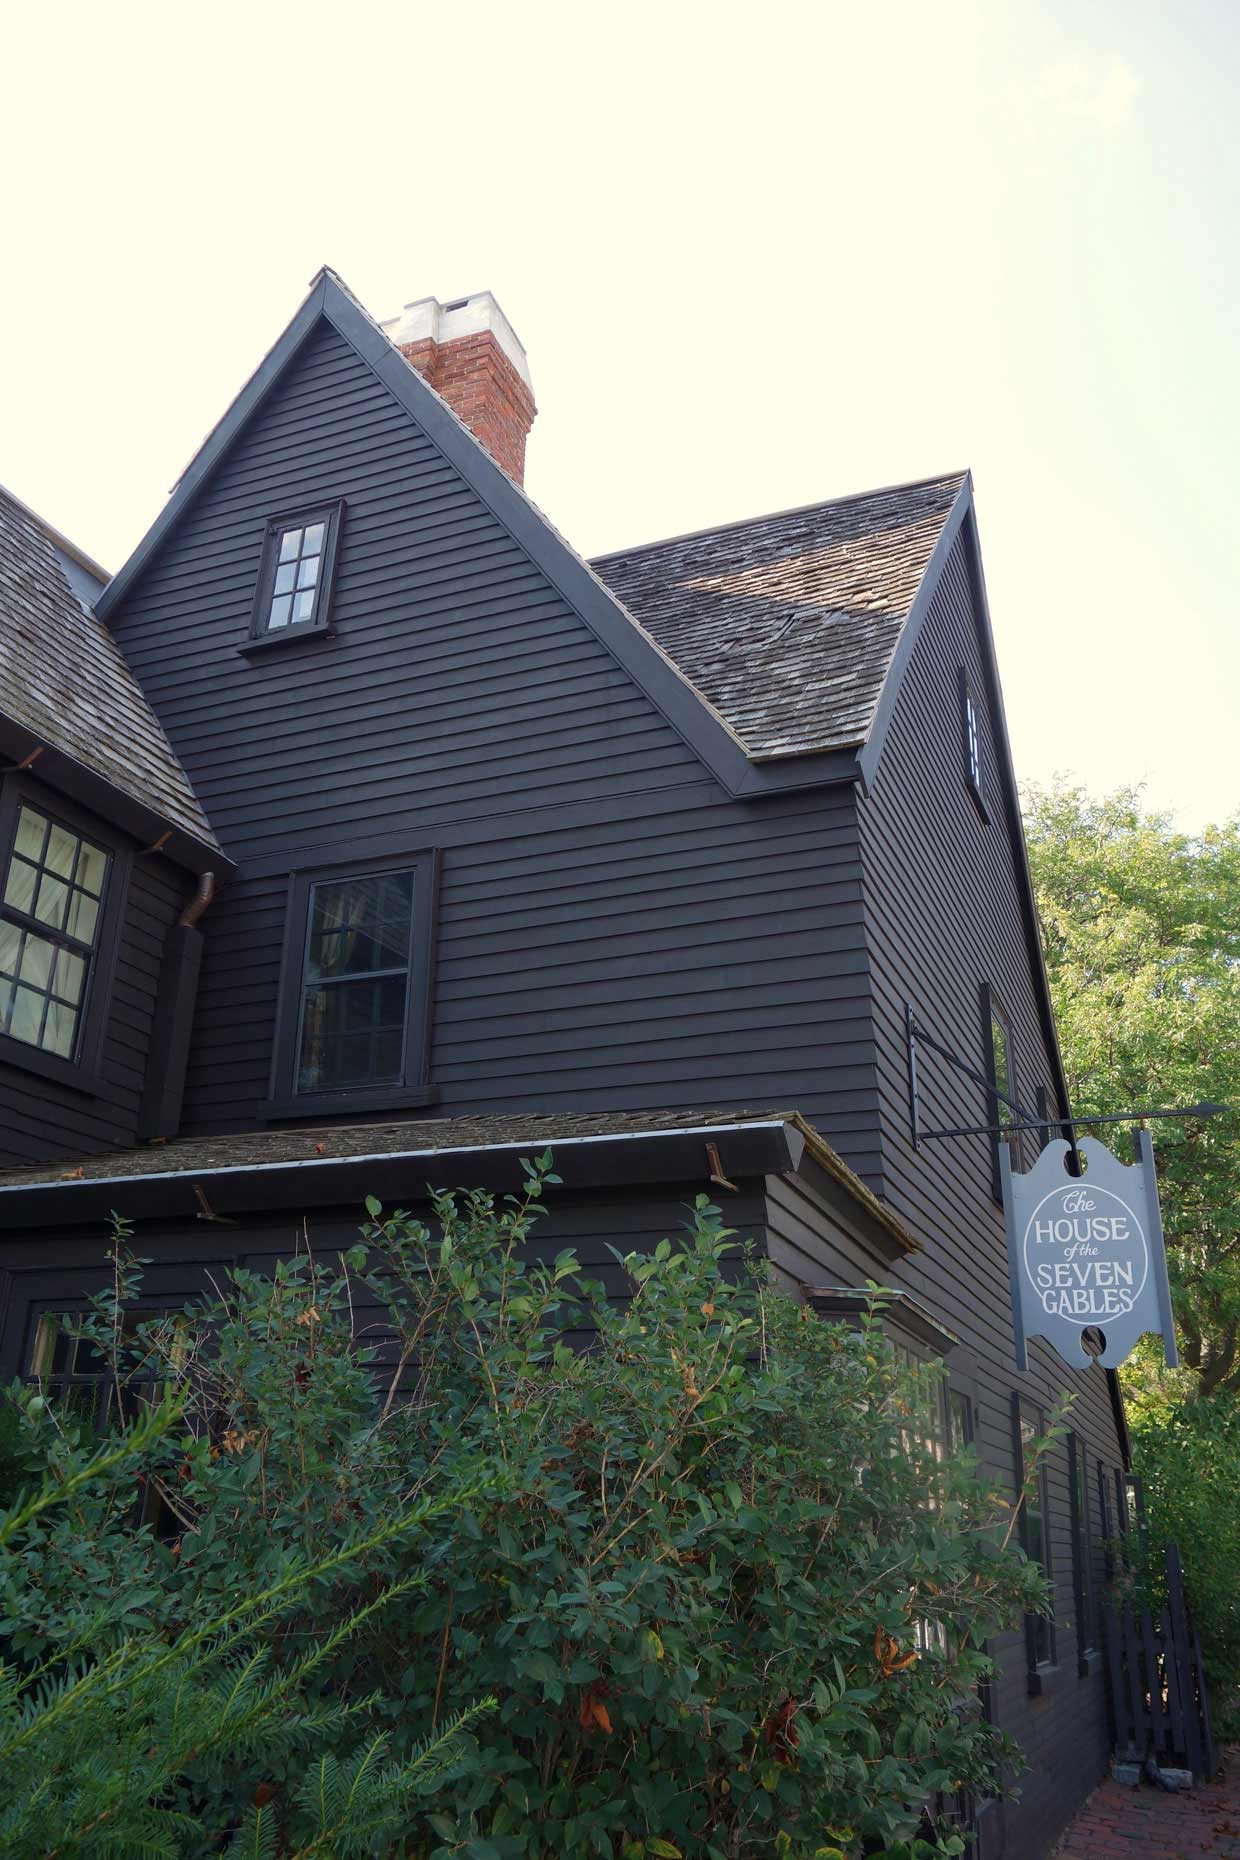 24.-The-House-of-the-Seven-Gables1 A whistle stop tour of Boston and Salem